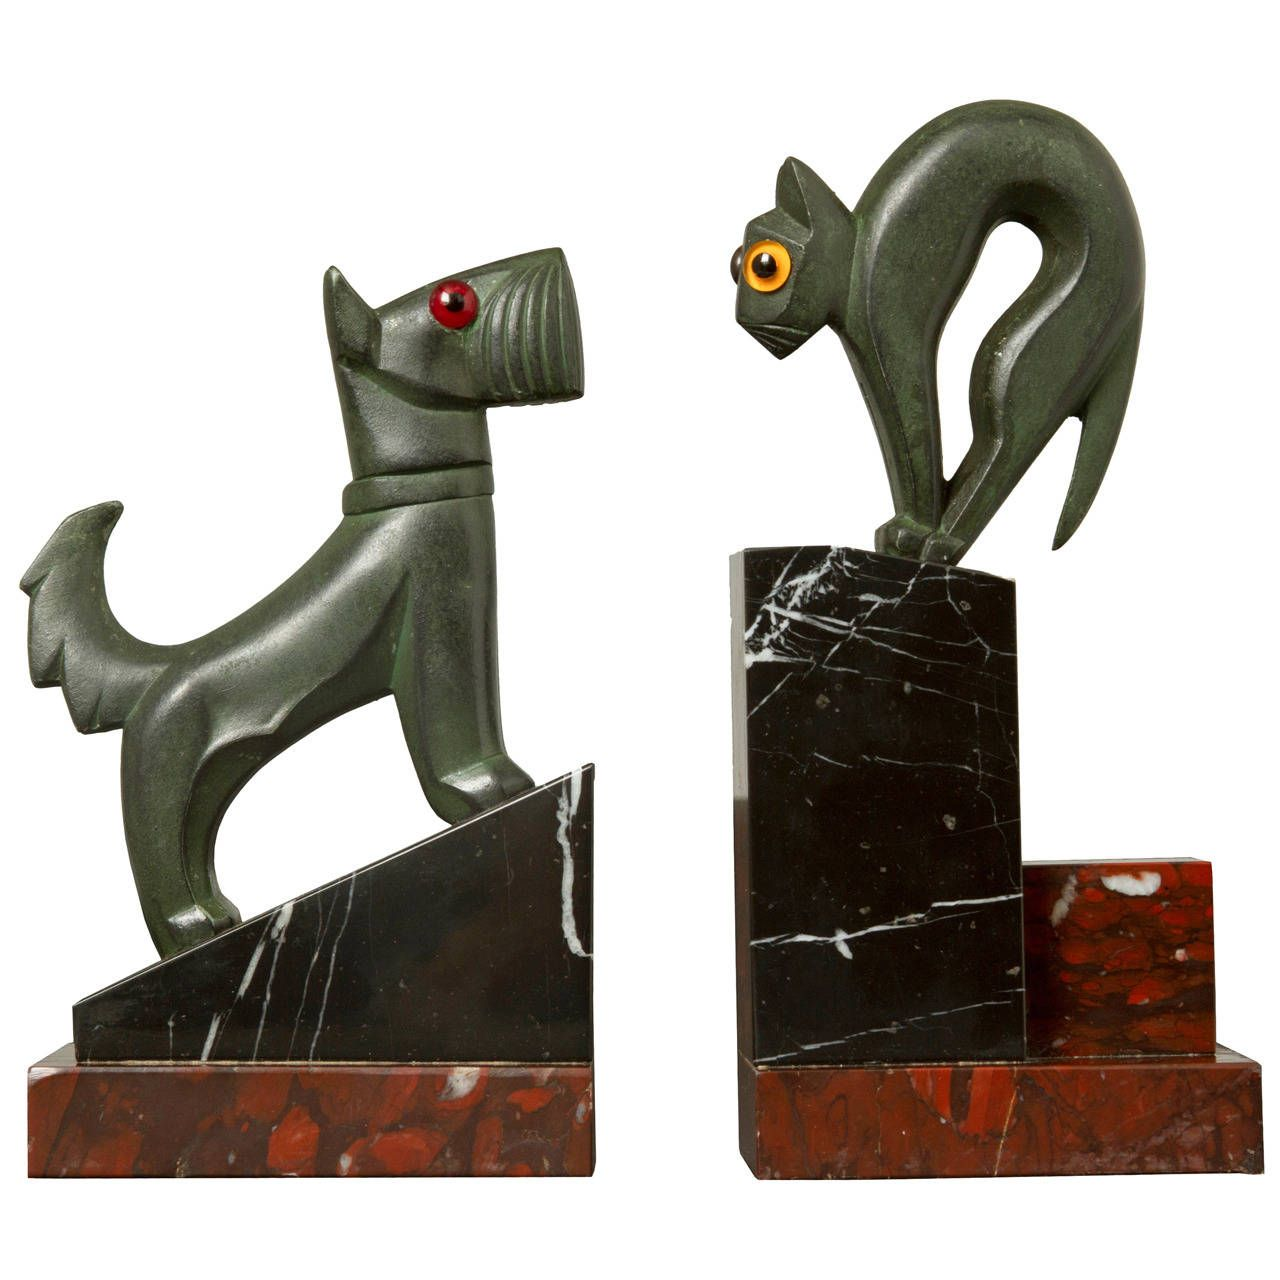 Modern Art Deco Furniture art deco pair of cat and dog bookends | modern bookends, art deco